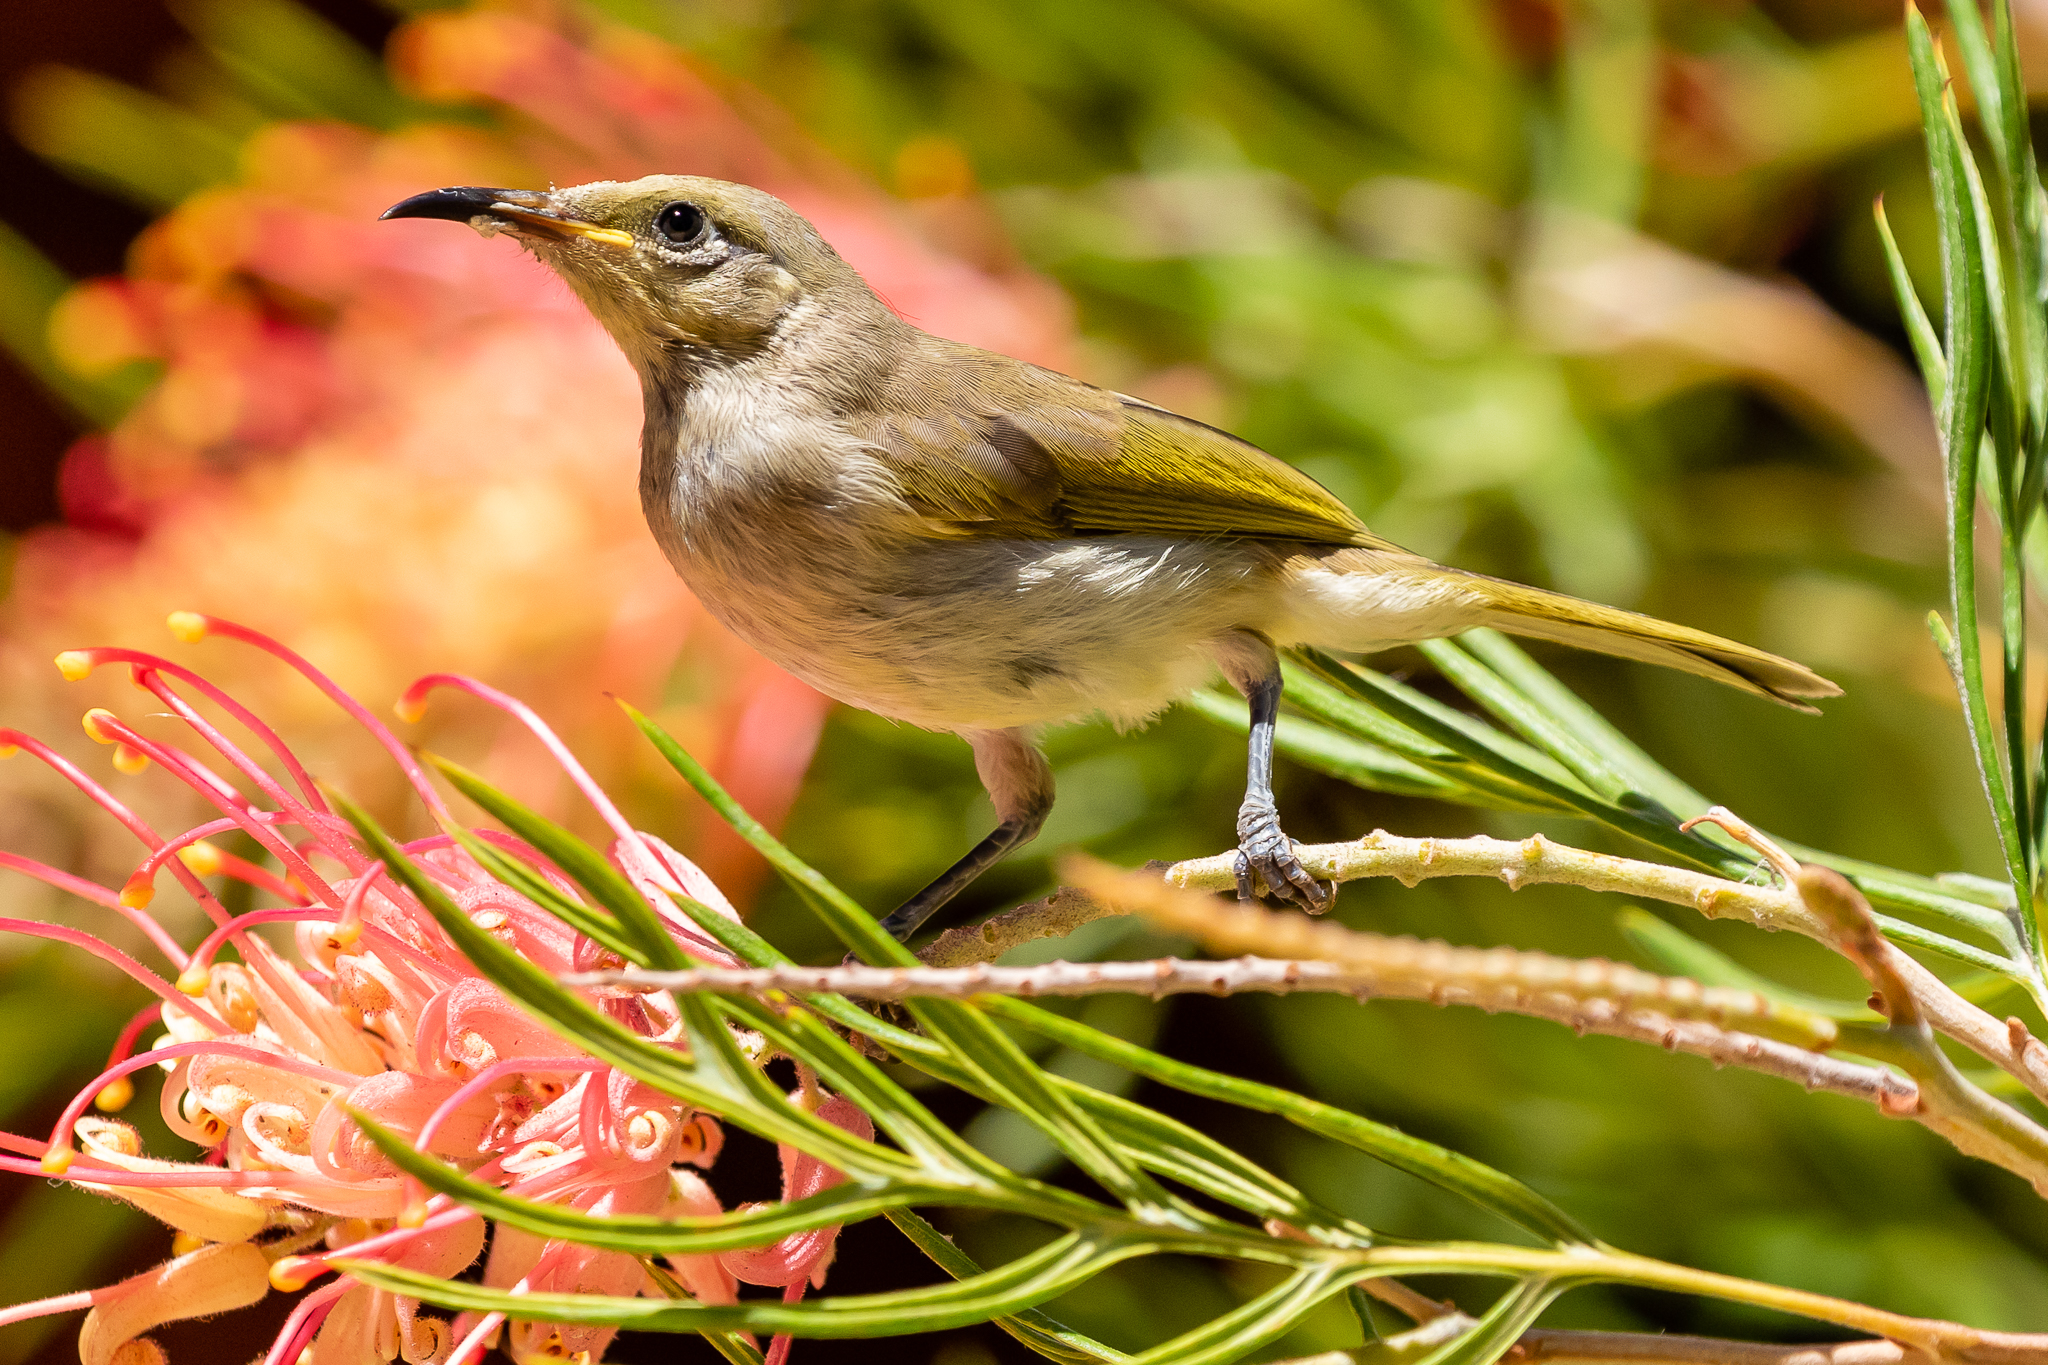 The Brown Honeyeater (16 cm) is common in WA. This bird was feeding on Grevilleas at the Kings Park cafe, along with Red Wattlebirds, Western Spinebills, White-cheeked and Tawny-crowned Honeyeaters.